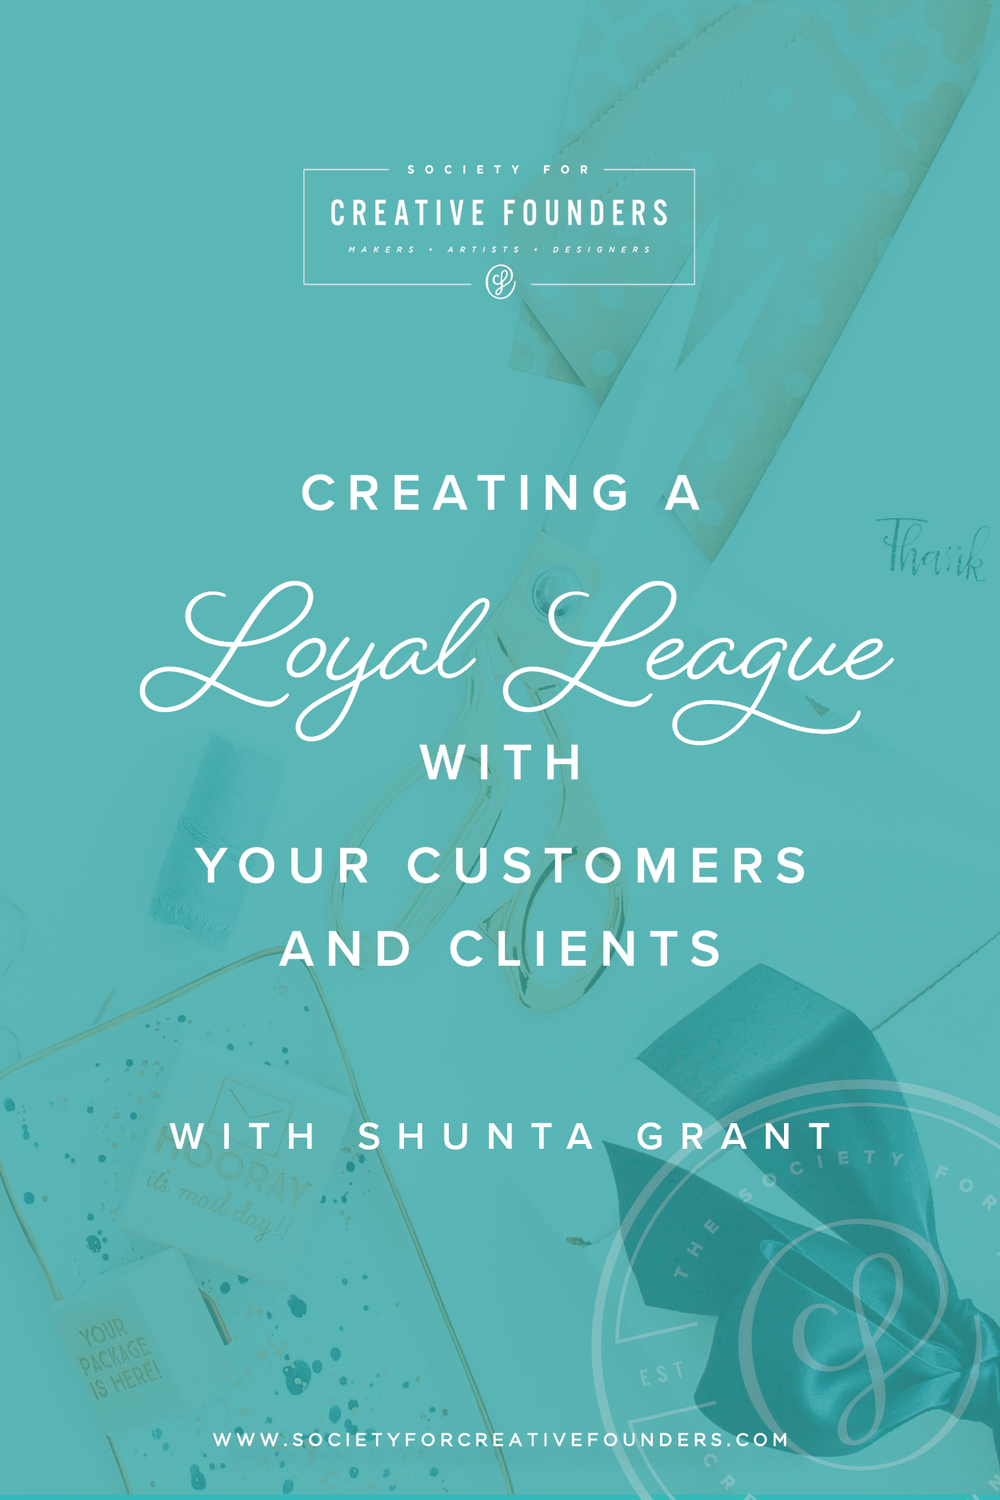 Creating a Loyalty League with your Customers and Clients by Shunta Grant